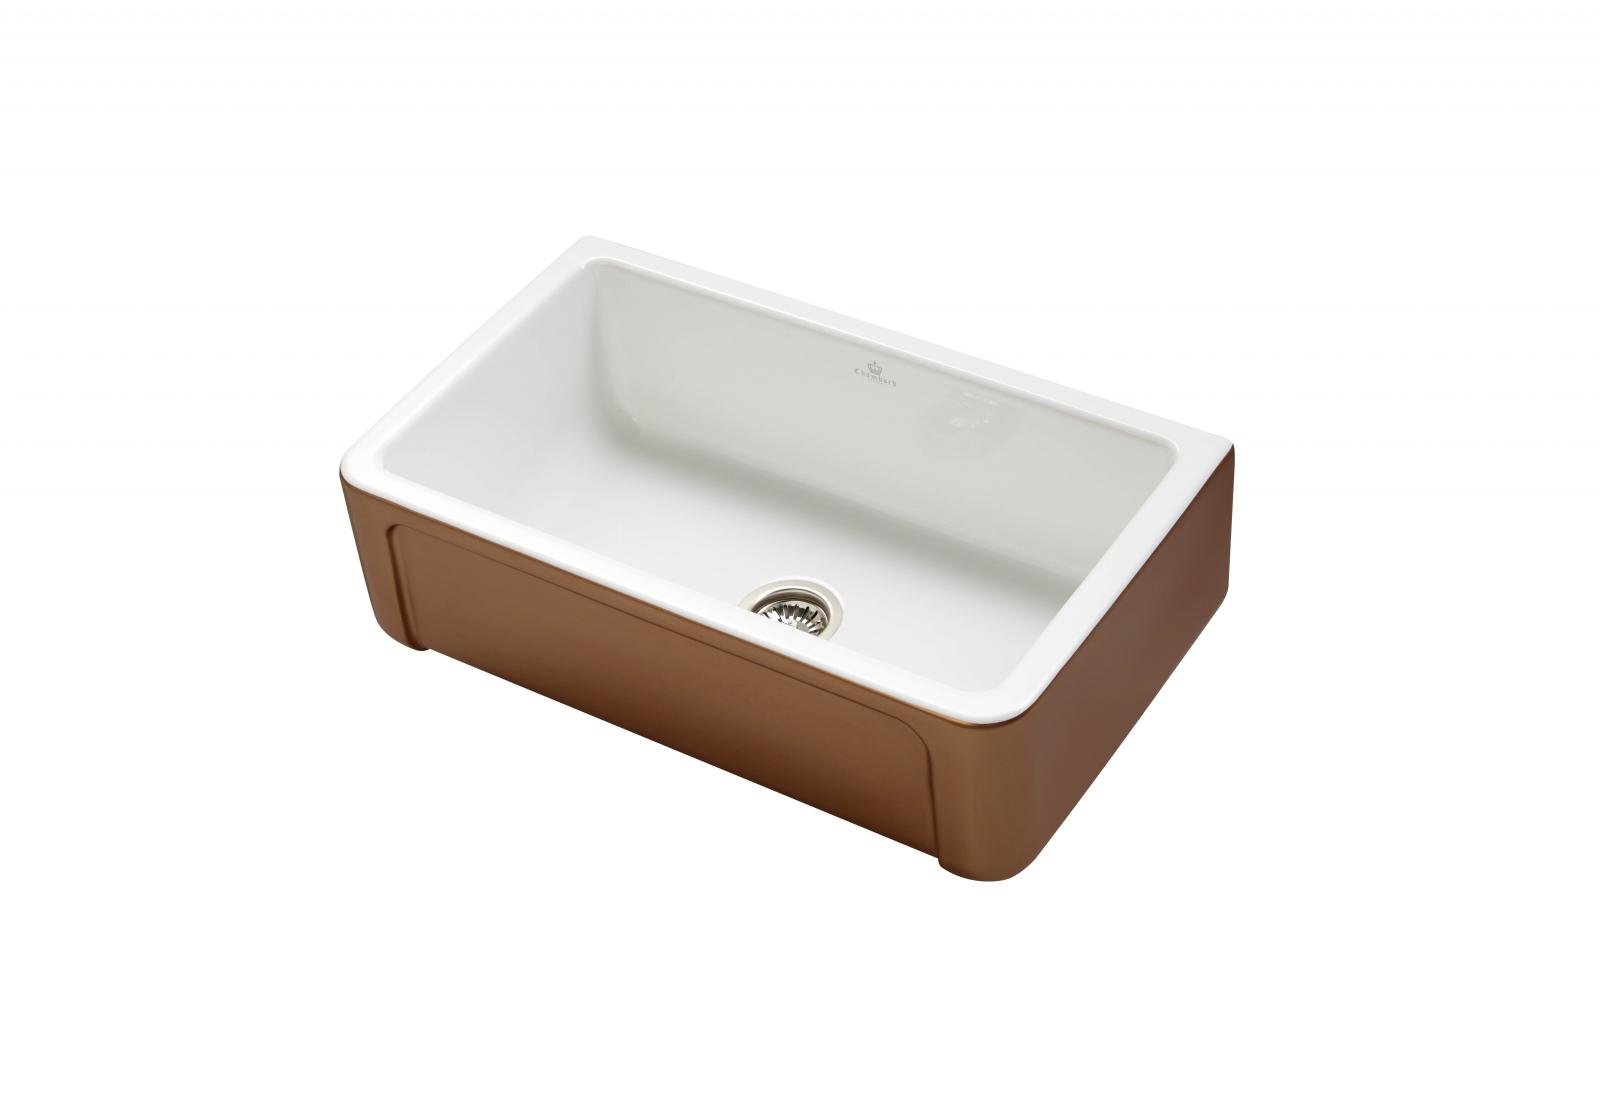 High-quality sink Henri II Le Grand Copper - single bowl, ceramic ambience